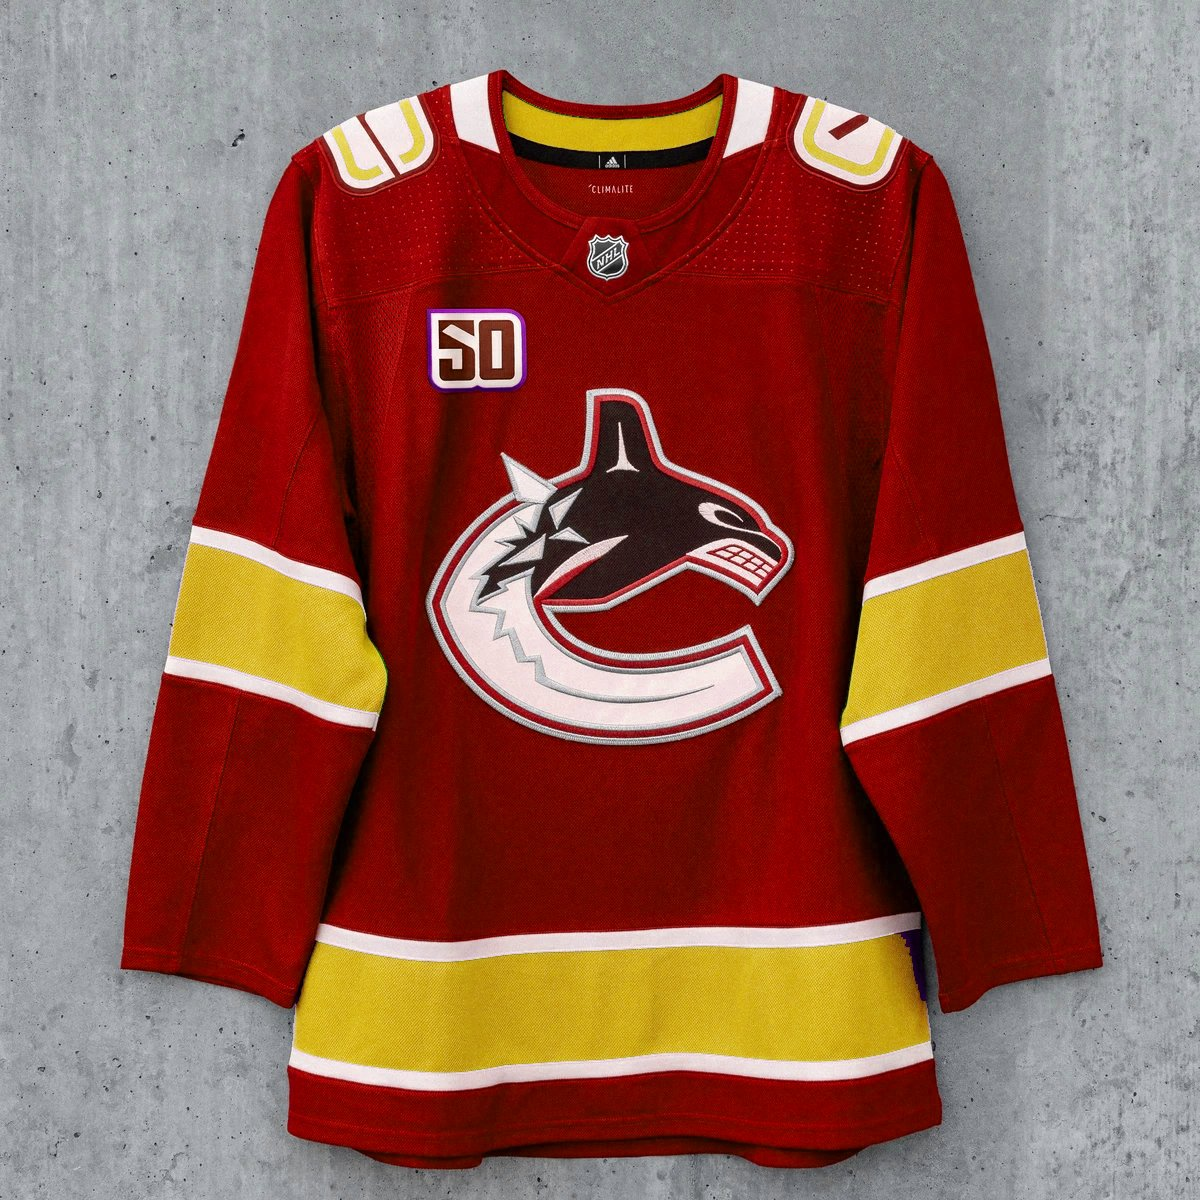 Hans On Twitter The Calgary Flames Have Announced Their 2020 21 Reverse Retro Jerseys It Will Be Their 2019 20 Jersey With Modern Colours Https T Co 783qppepda